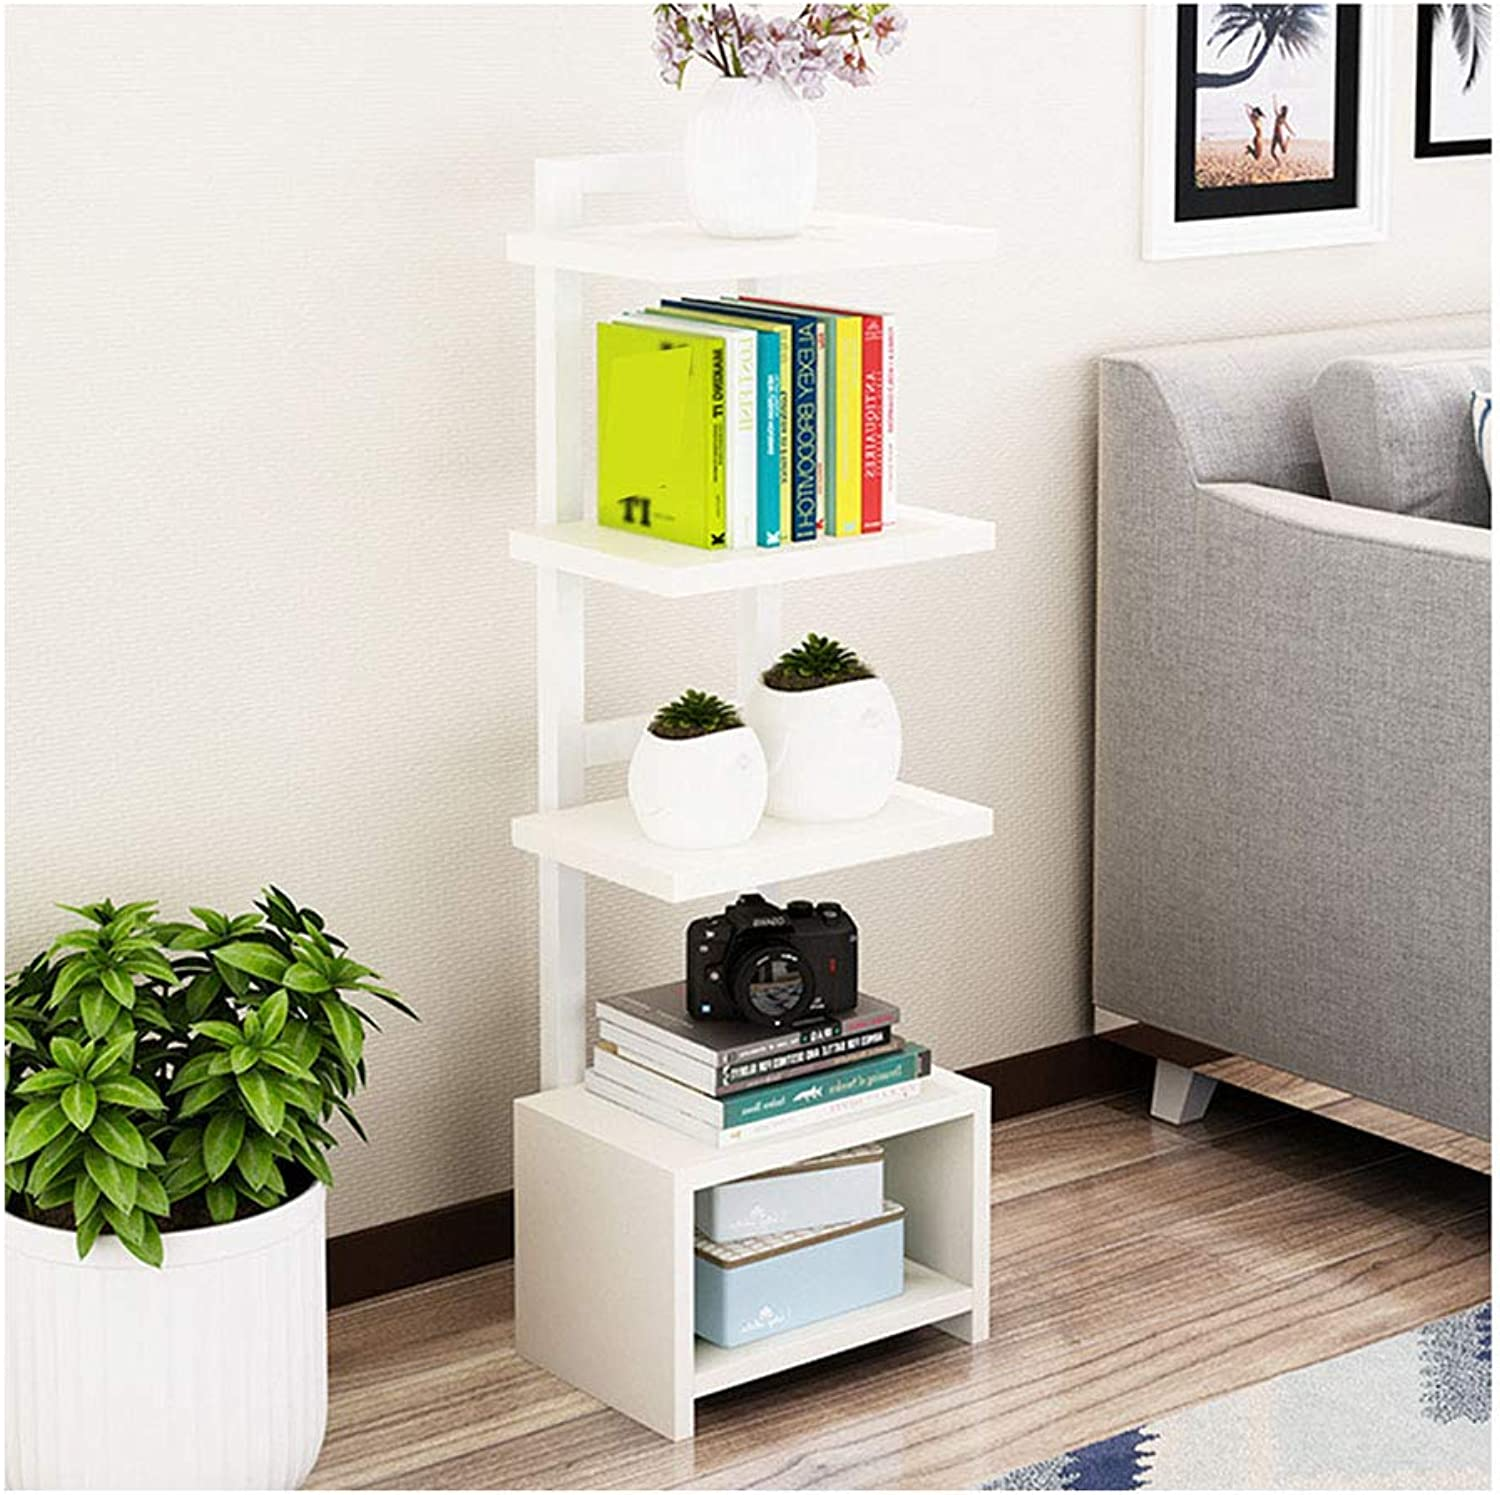 DGLIYJ Floor-standing bookshelf simple home flower rack living room storage rack 5 layers (color   White)